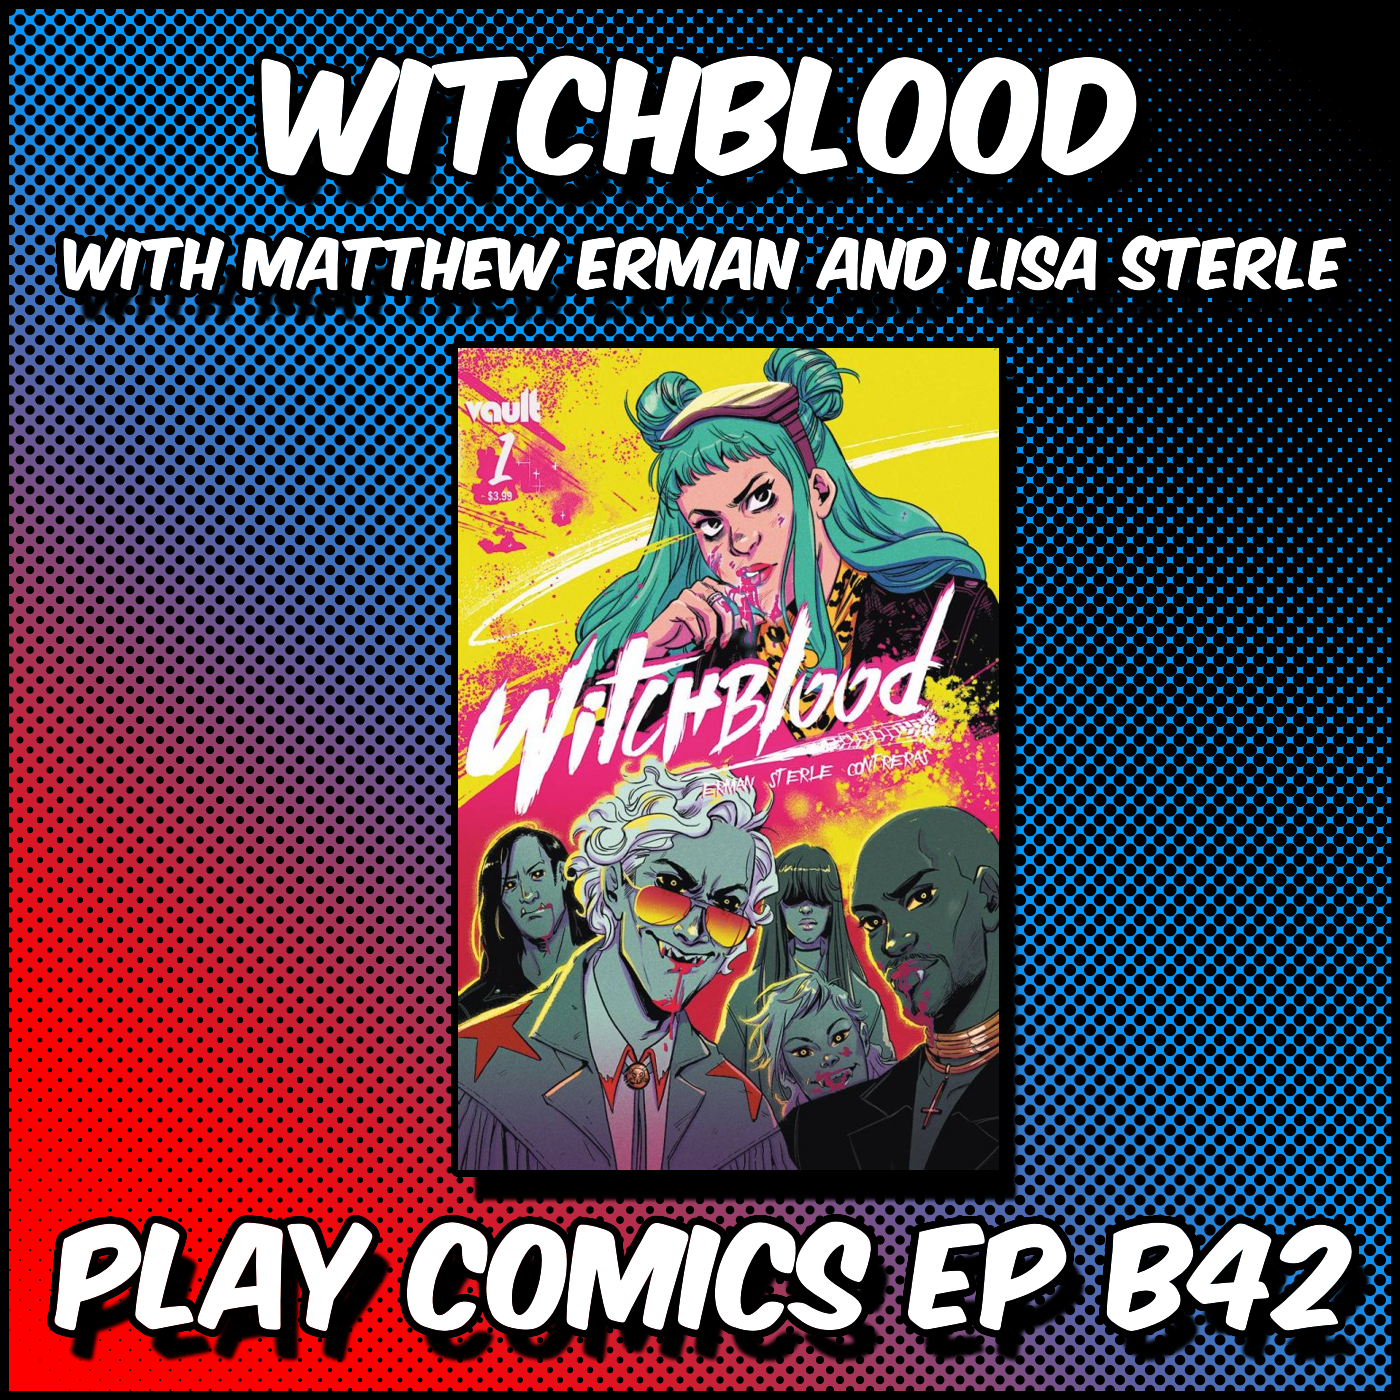 Witchblood with Matthew Erman and Lisa Sterle